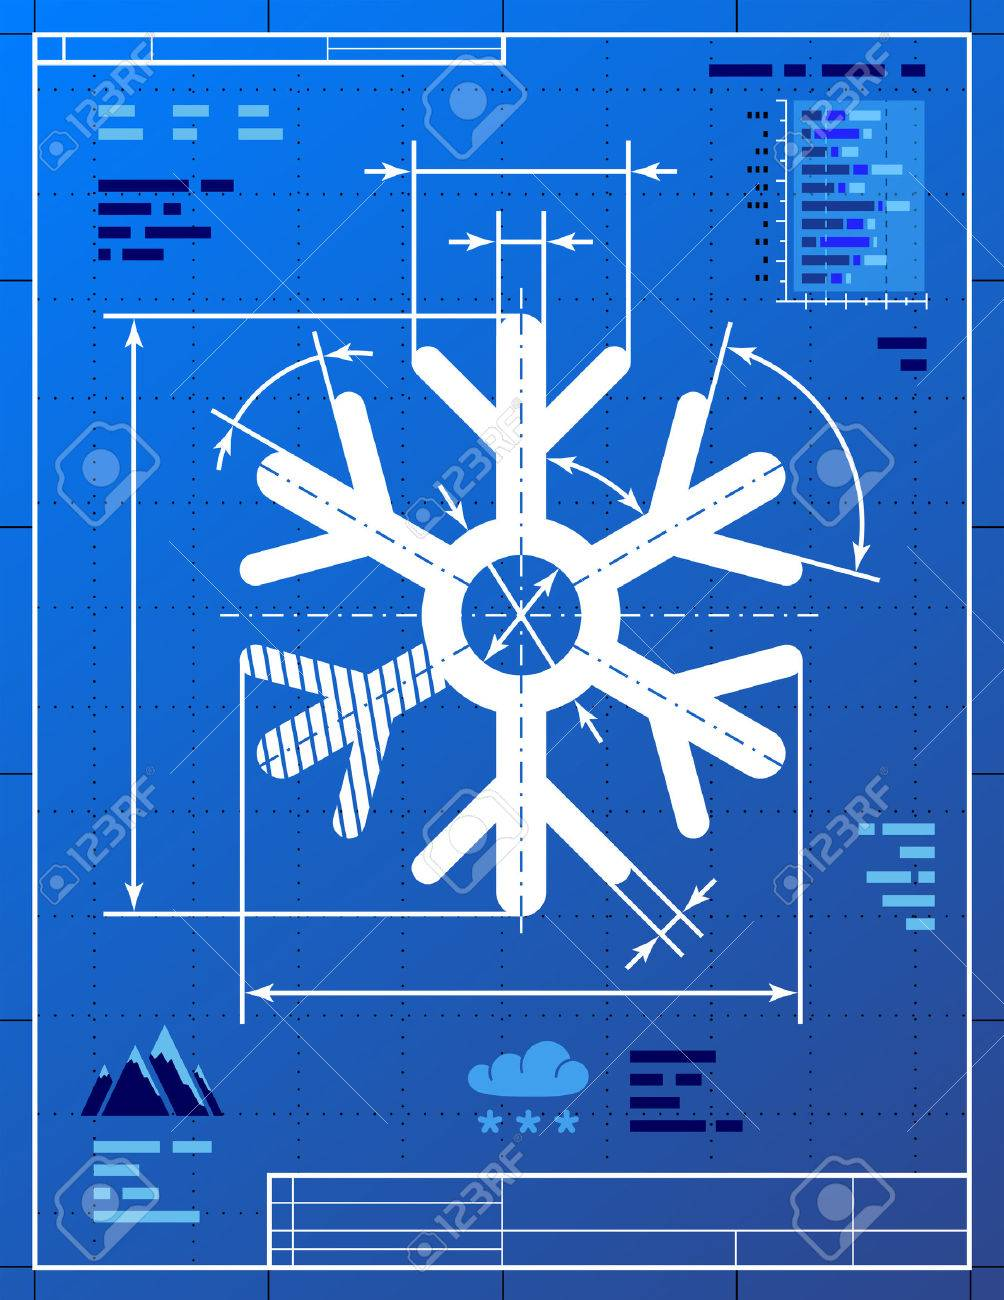 Snowflake symbol like blueprint drawing stylized drawing of snowflake symbol like blueprint drawing stylized drawing of snow sign on blueprint paper qualitative vector eps malvernweather Gallery